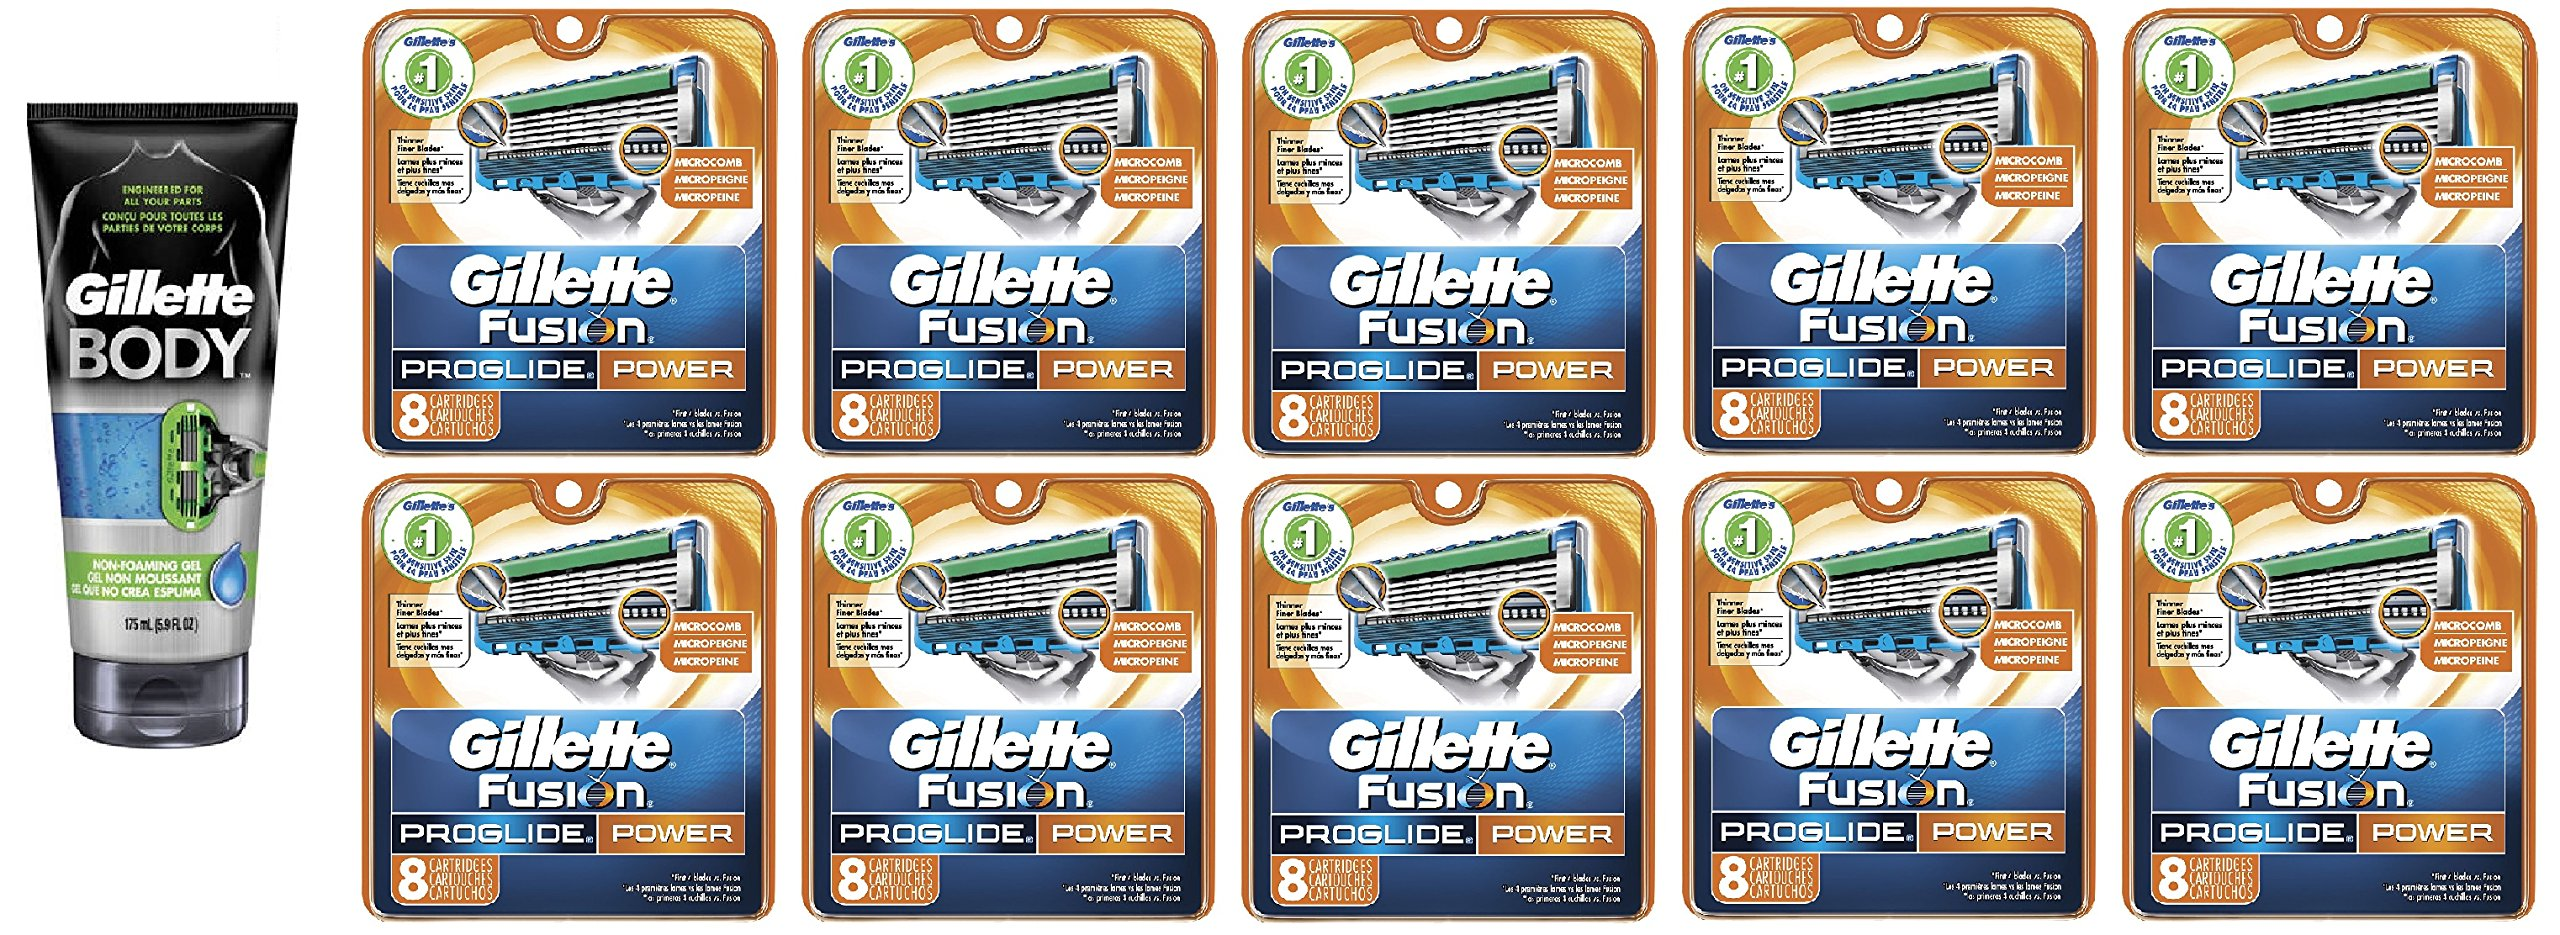 Gillette Body Non Foaming Shave Gel for Men, 5.9 Fl Oz + Fusion Proglide Power Refill Blades 8 Ct (10 Pack) + FREE Travel Toothbrush, Color May Vary